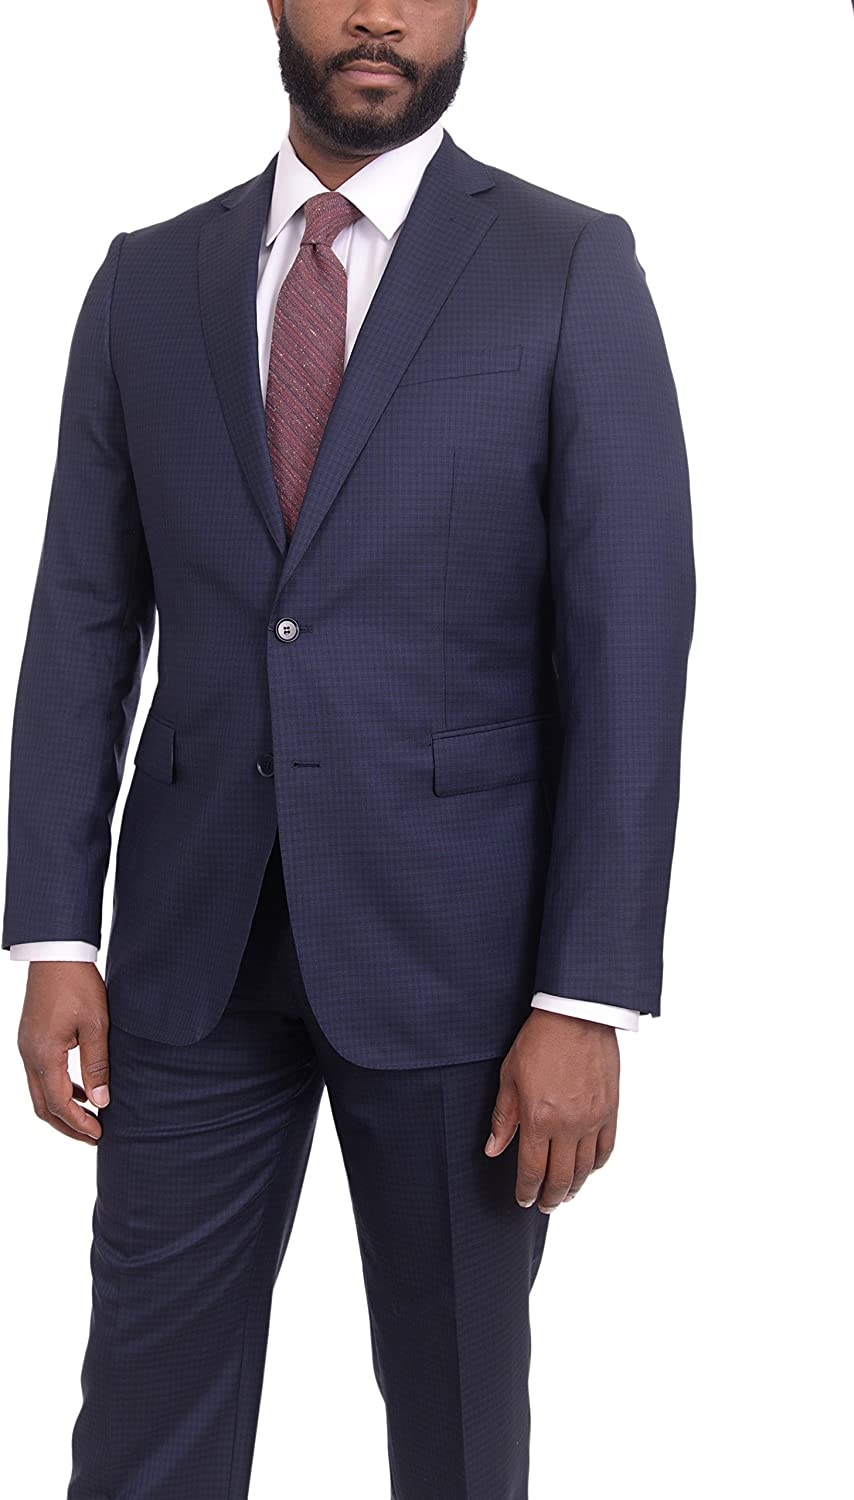 Mens Modern Fit Navy Blue Check Popular products Suit 150s Wool Max 55% OFF Two Super Button